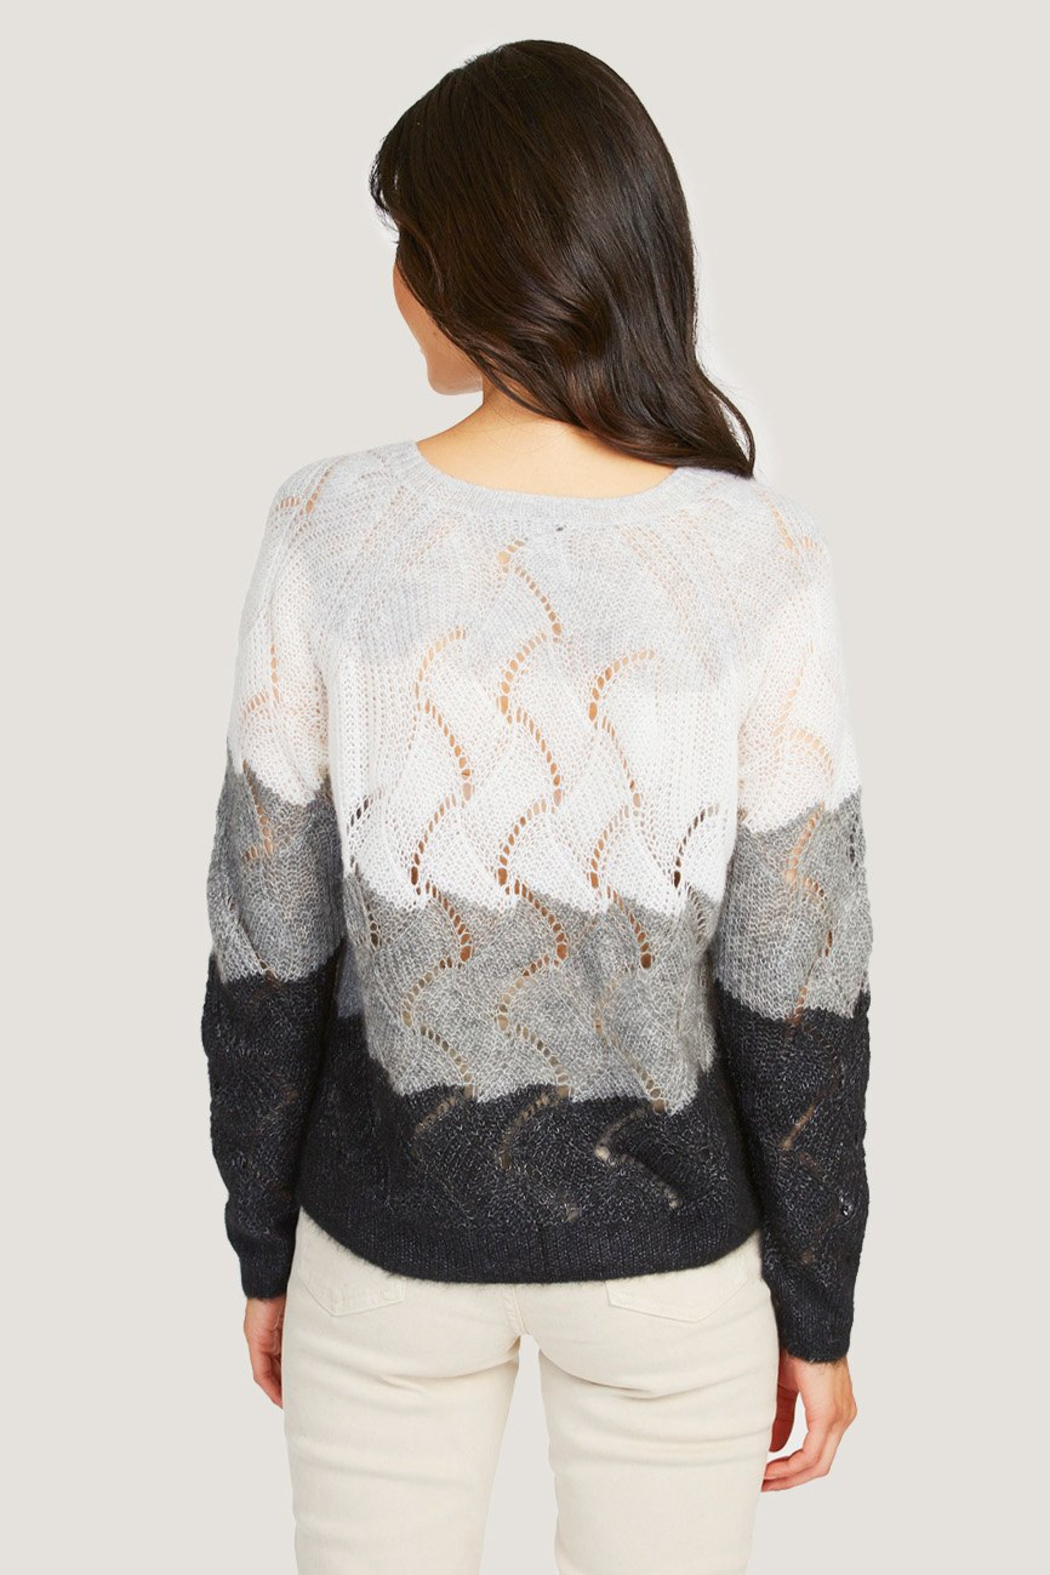 Autumn Cashmere Striped Wave Stitch Sweater - Side Cropped Image